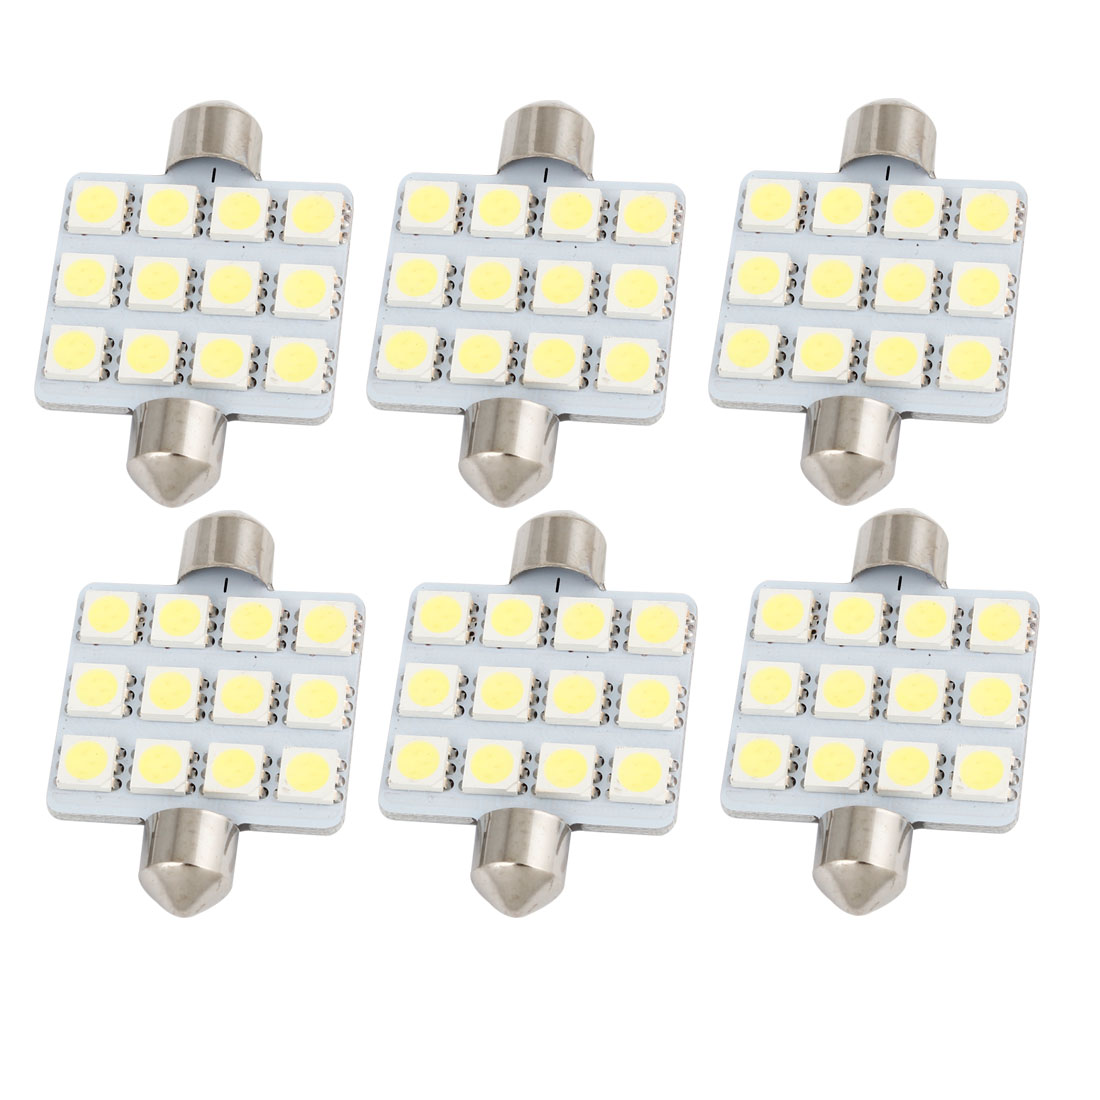 "6Pcs 42mm 1.65"" 5050 SMD 12-LED Festoon Dome Light White 212 569 6413 Internal"